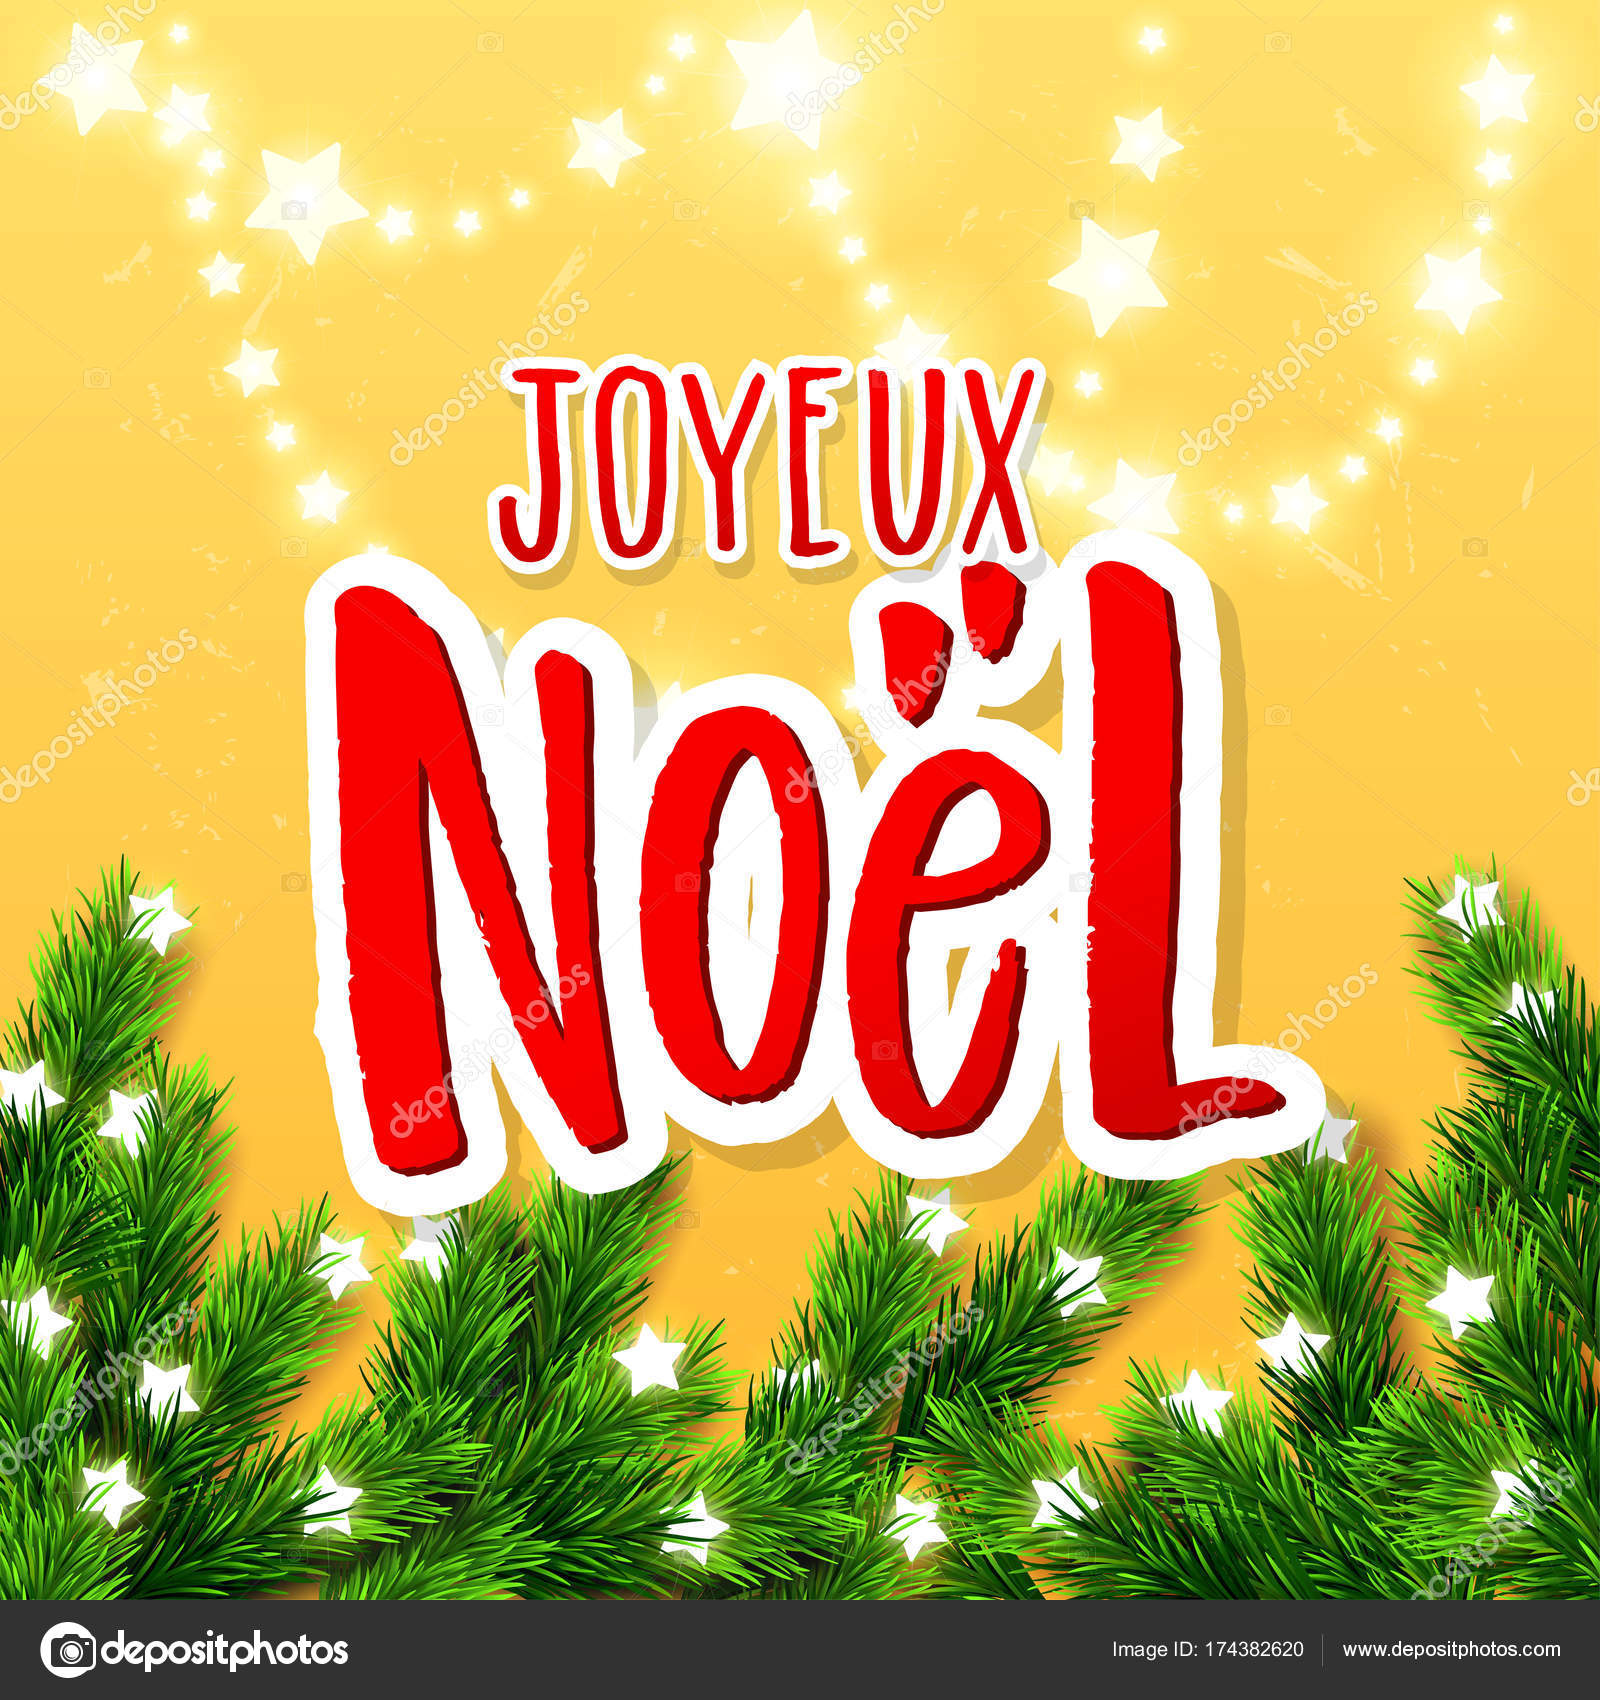 Merry christmas greeting card with greetings in french language merry christmas greeting card with greetings in french language xmas vector background hand drawn m4hsunfo